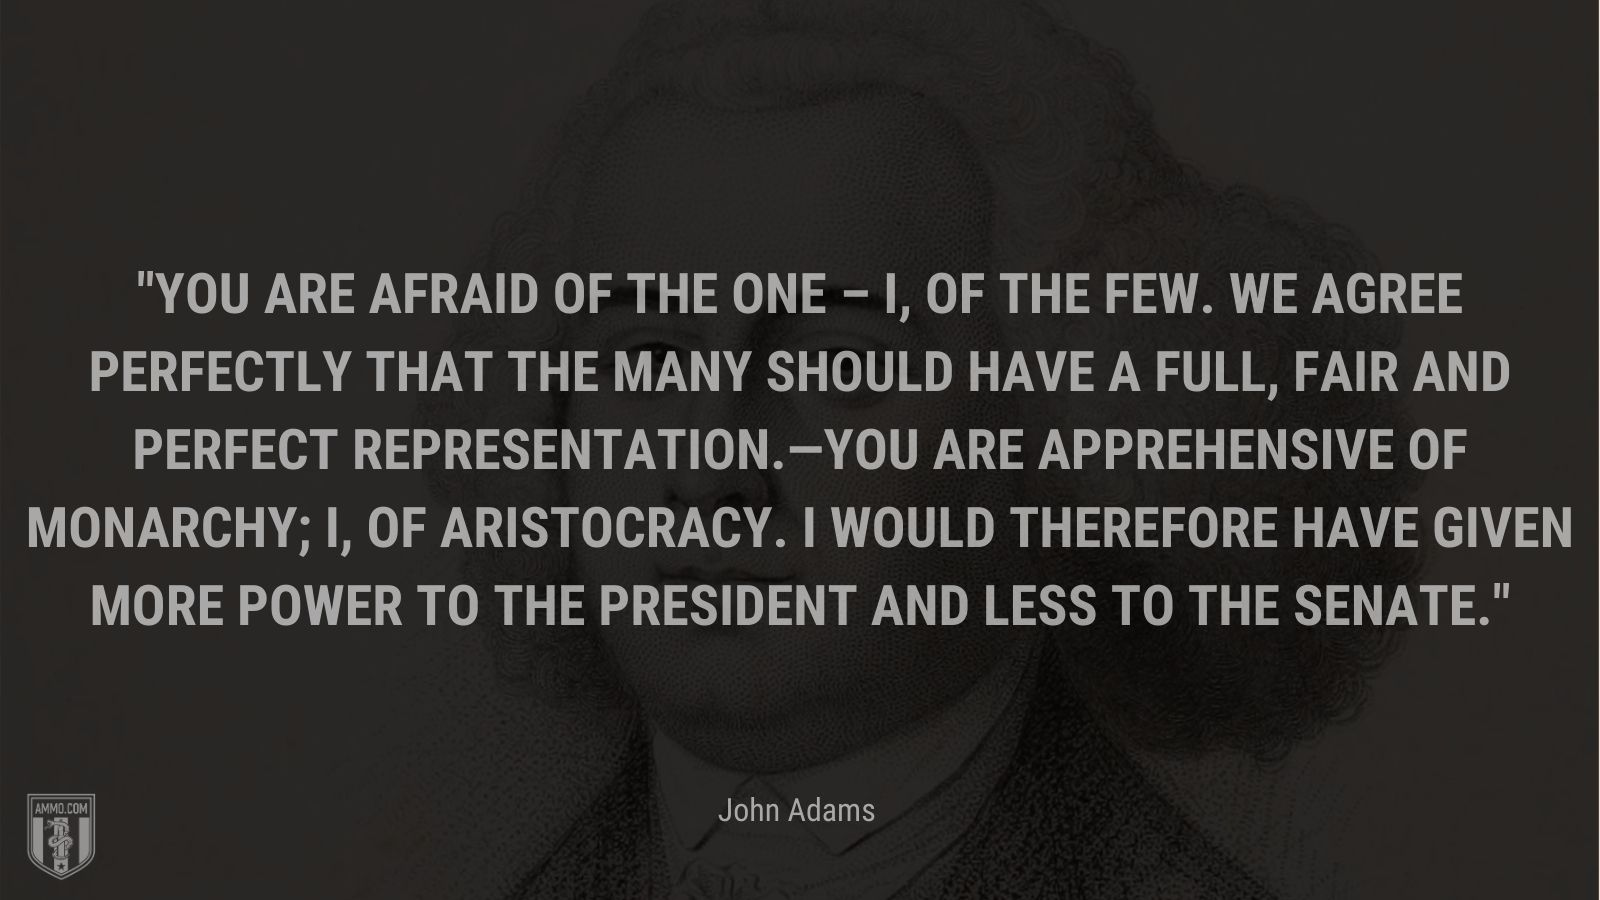 """""""You are afraid of the one – I, of the few. We agree perfectly that the many should have a full, fair and perfect  Representation.—You are Apprehensive of Monarchy; I, of Aristocracy. I would therefore have given more Power to the President and less to the Senate."""" - John Adam"""